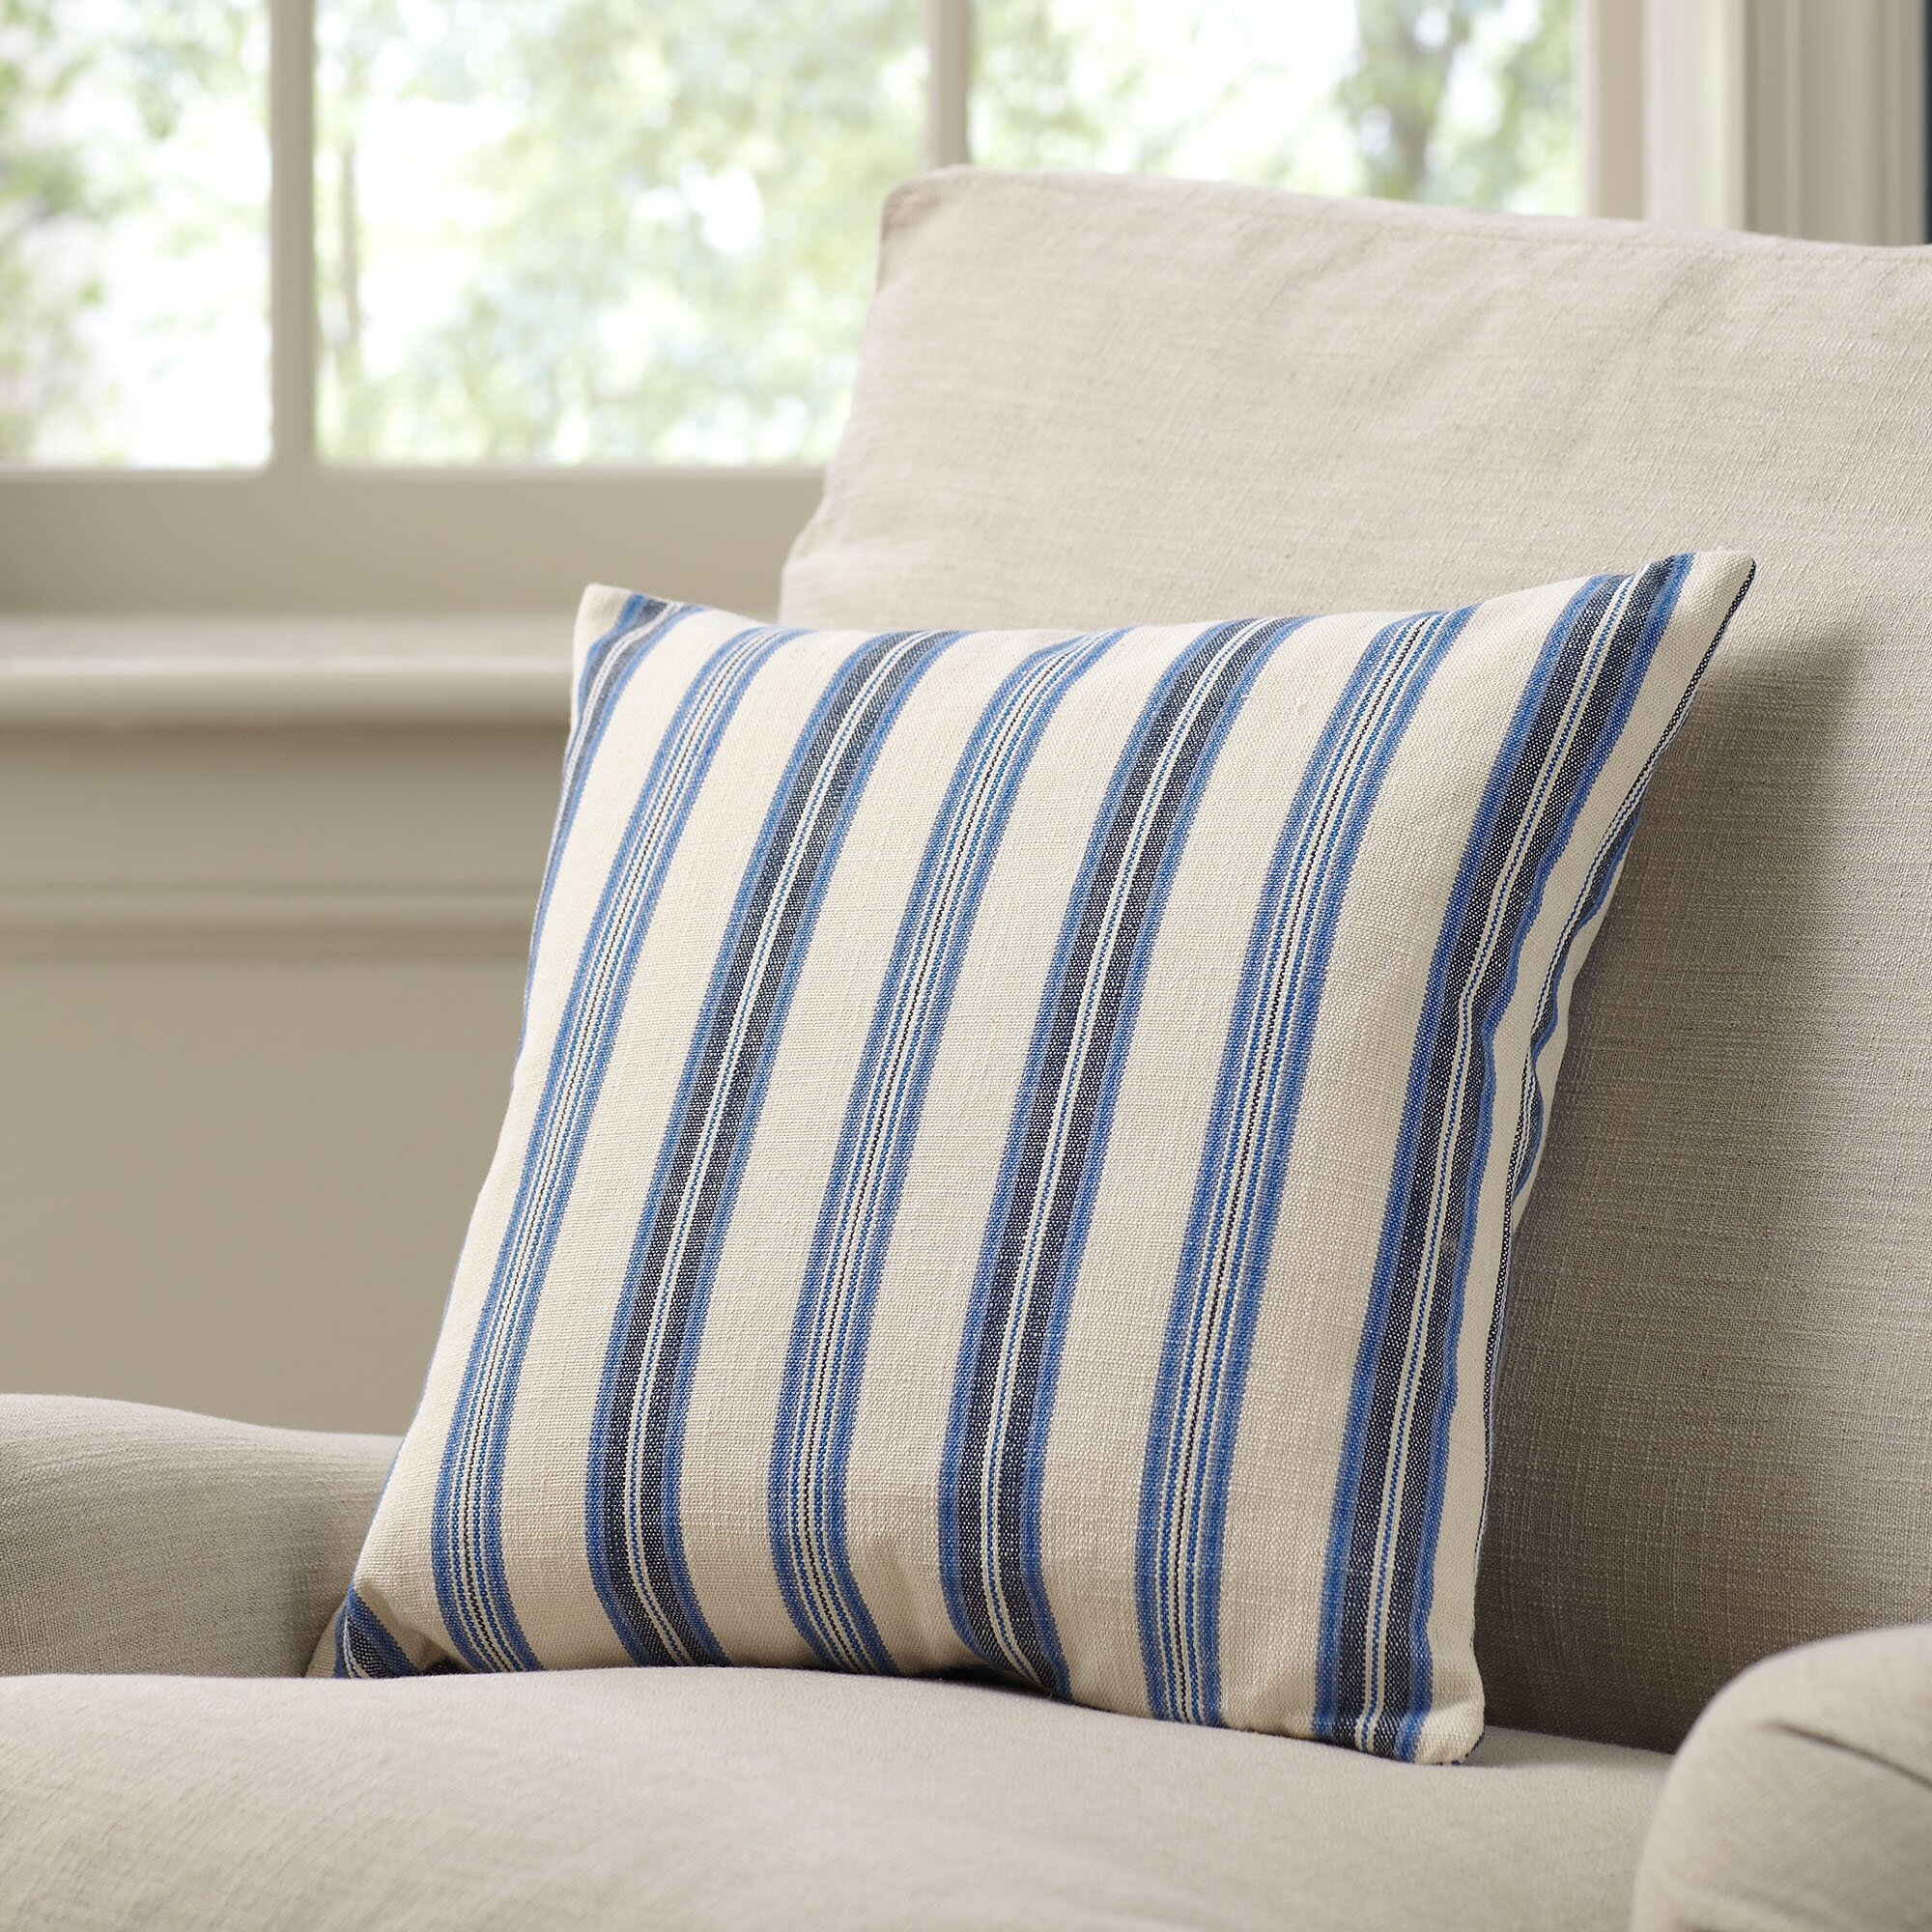 Wayfair Decorative Pillow Covers : Birch Lane Nottingham Pillow Cover Wayfair